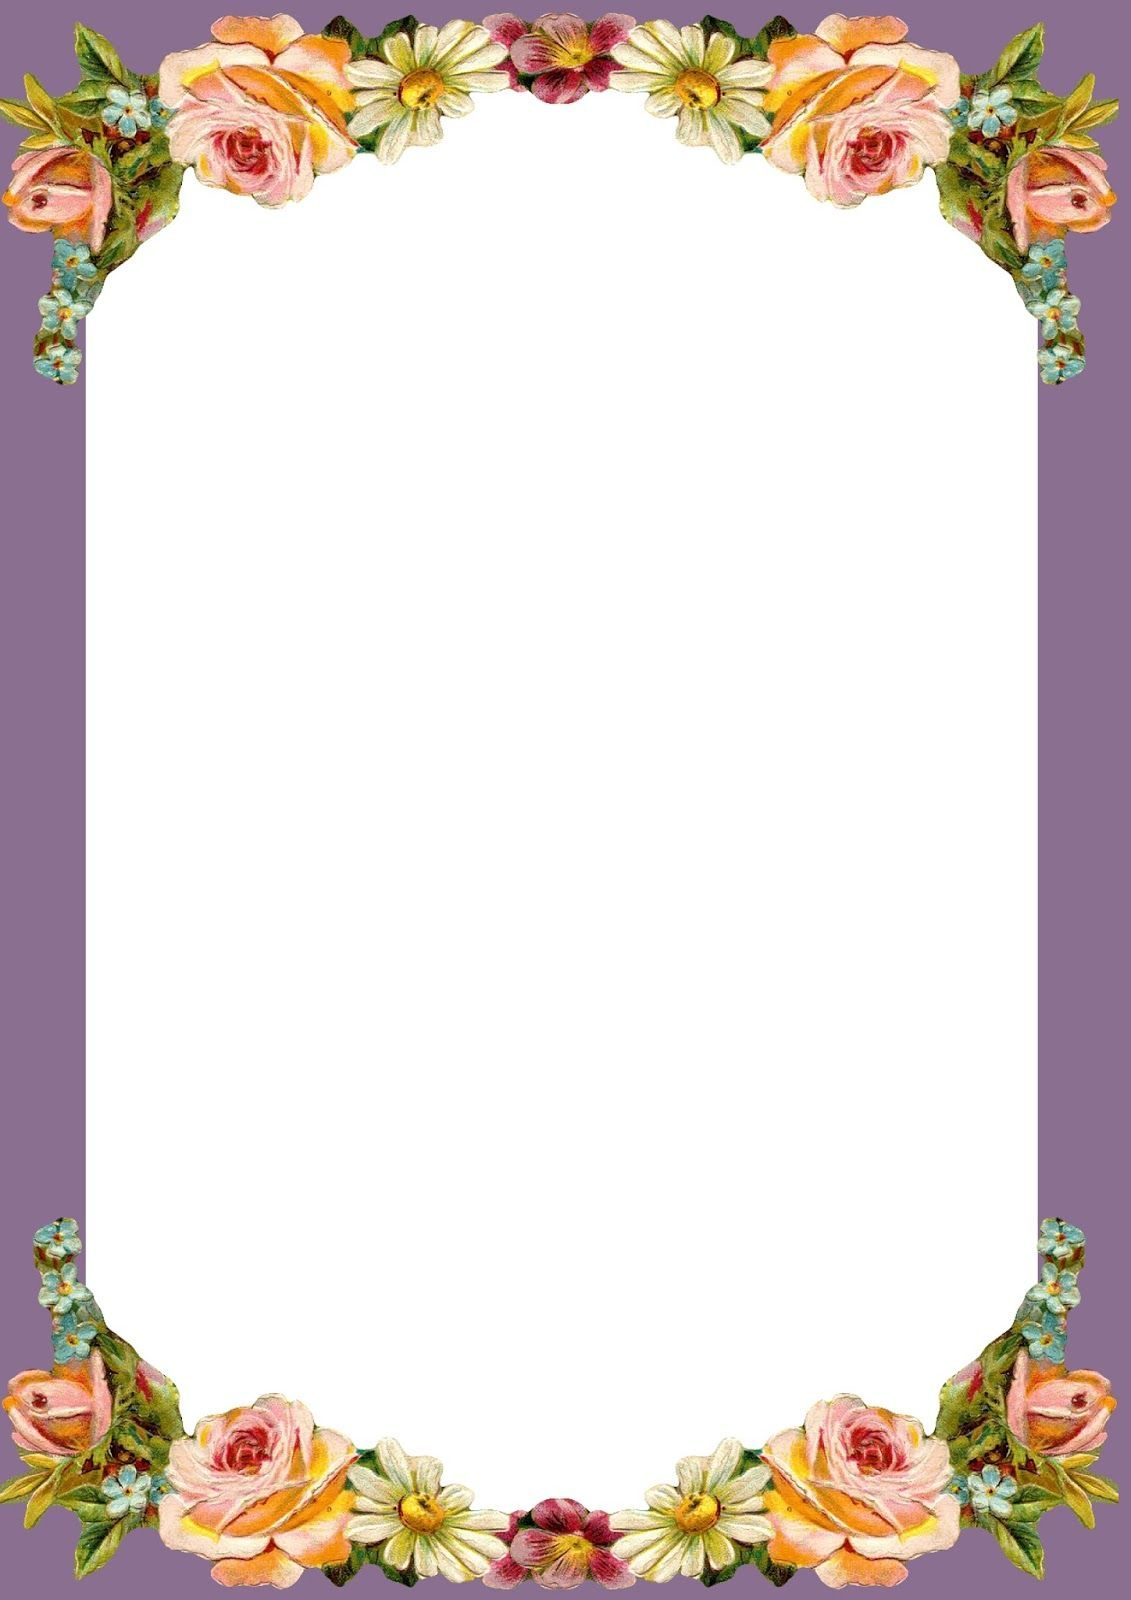 Free Printable Vintage Stationery  Free Paper Templates With Borders